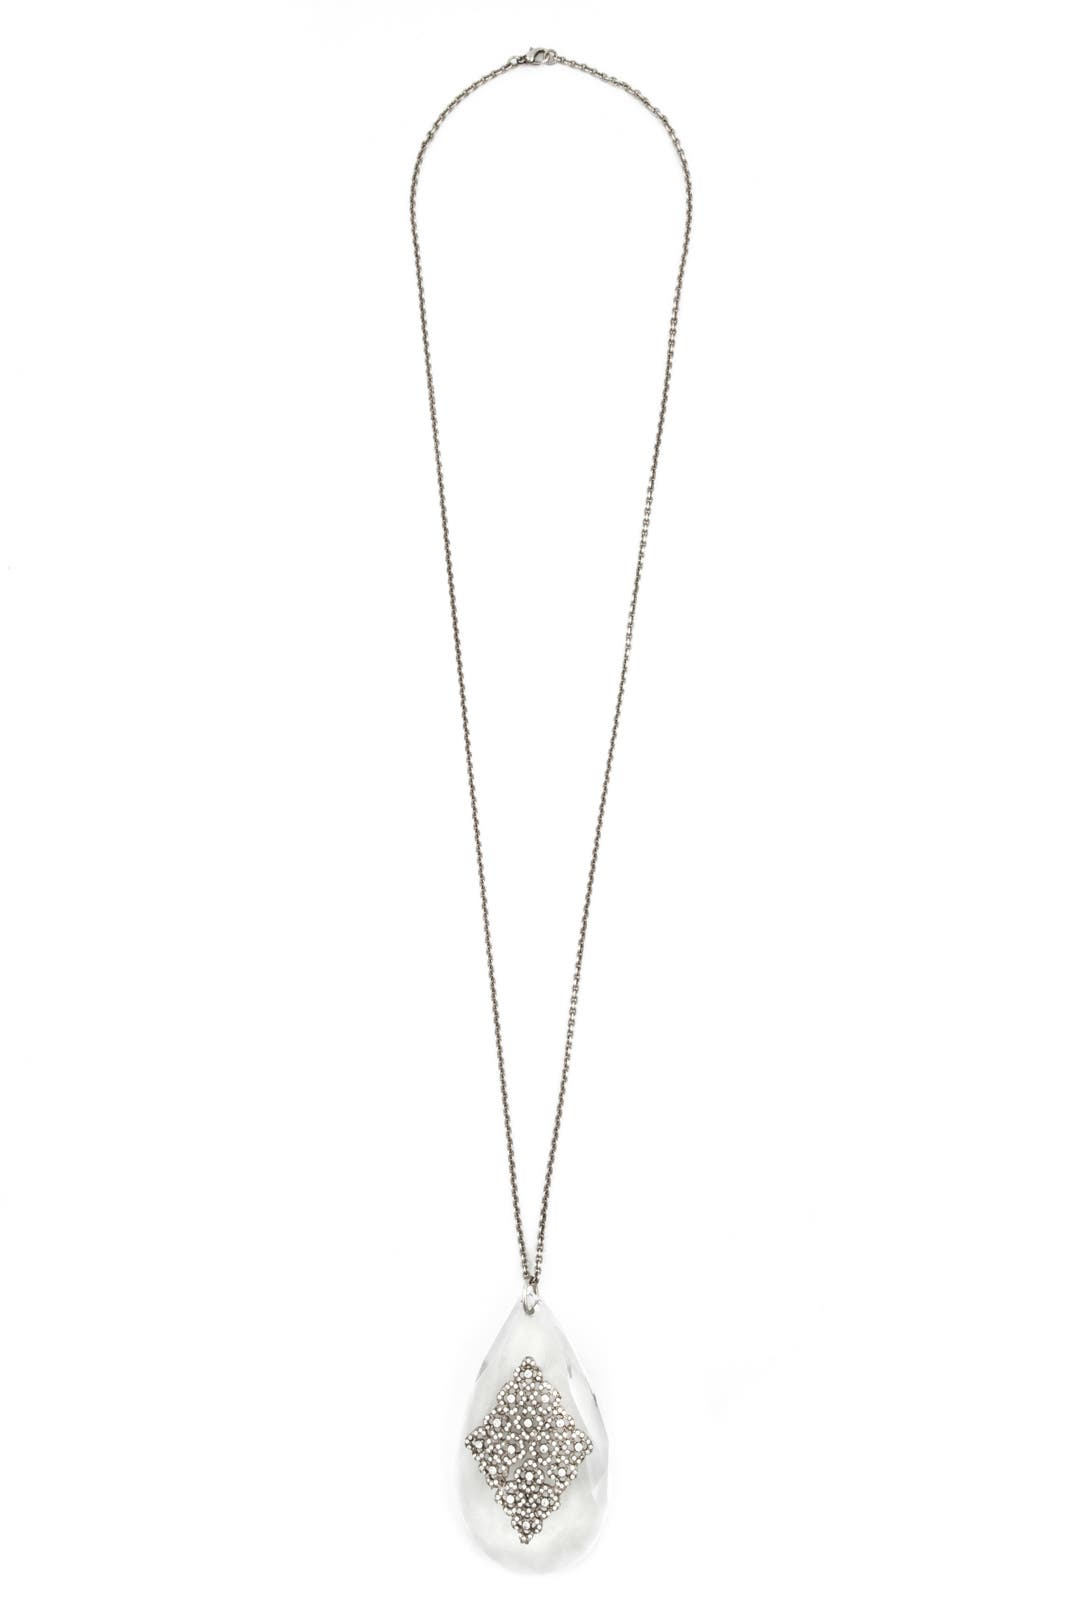 Oversized Teardrop Necklace by Ciner